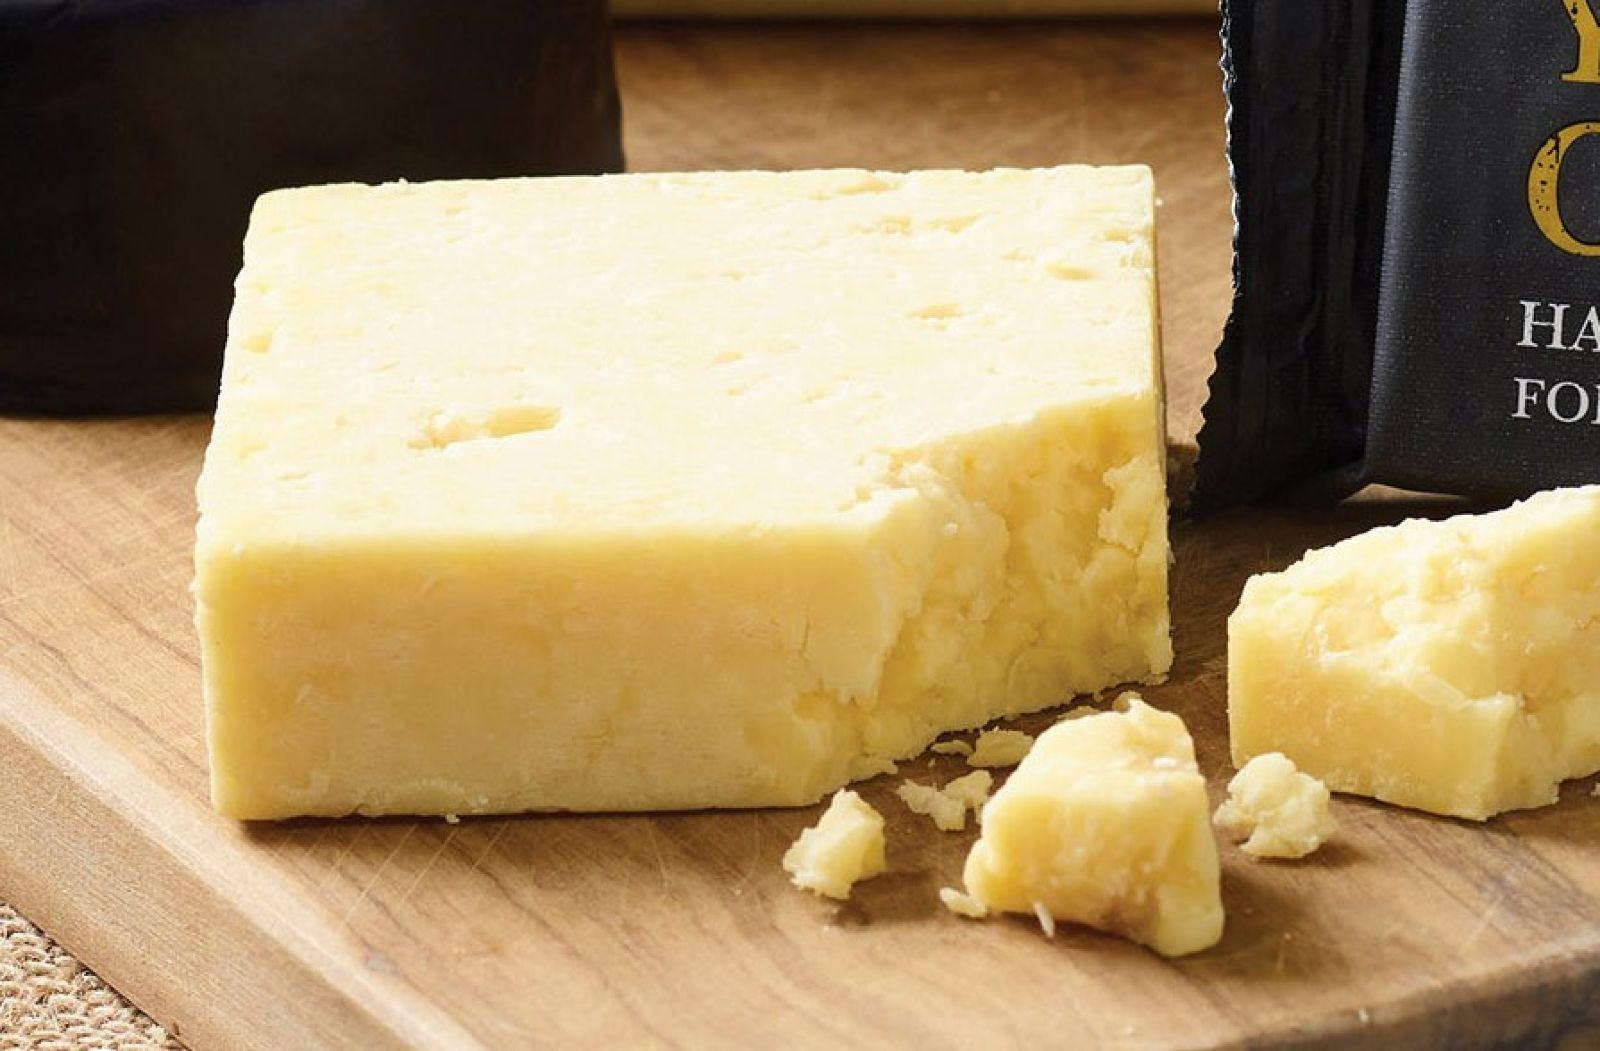 Wensleydale Fountains Gold Cheddar 200g - Celebration Cheeses